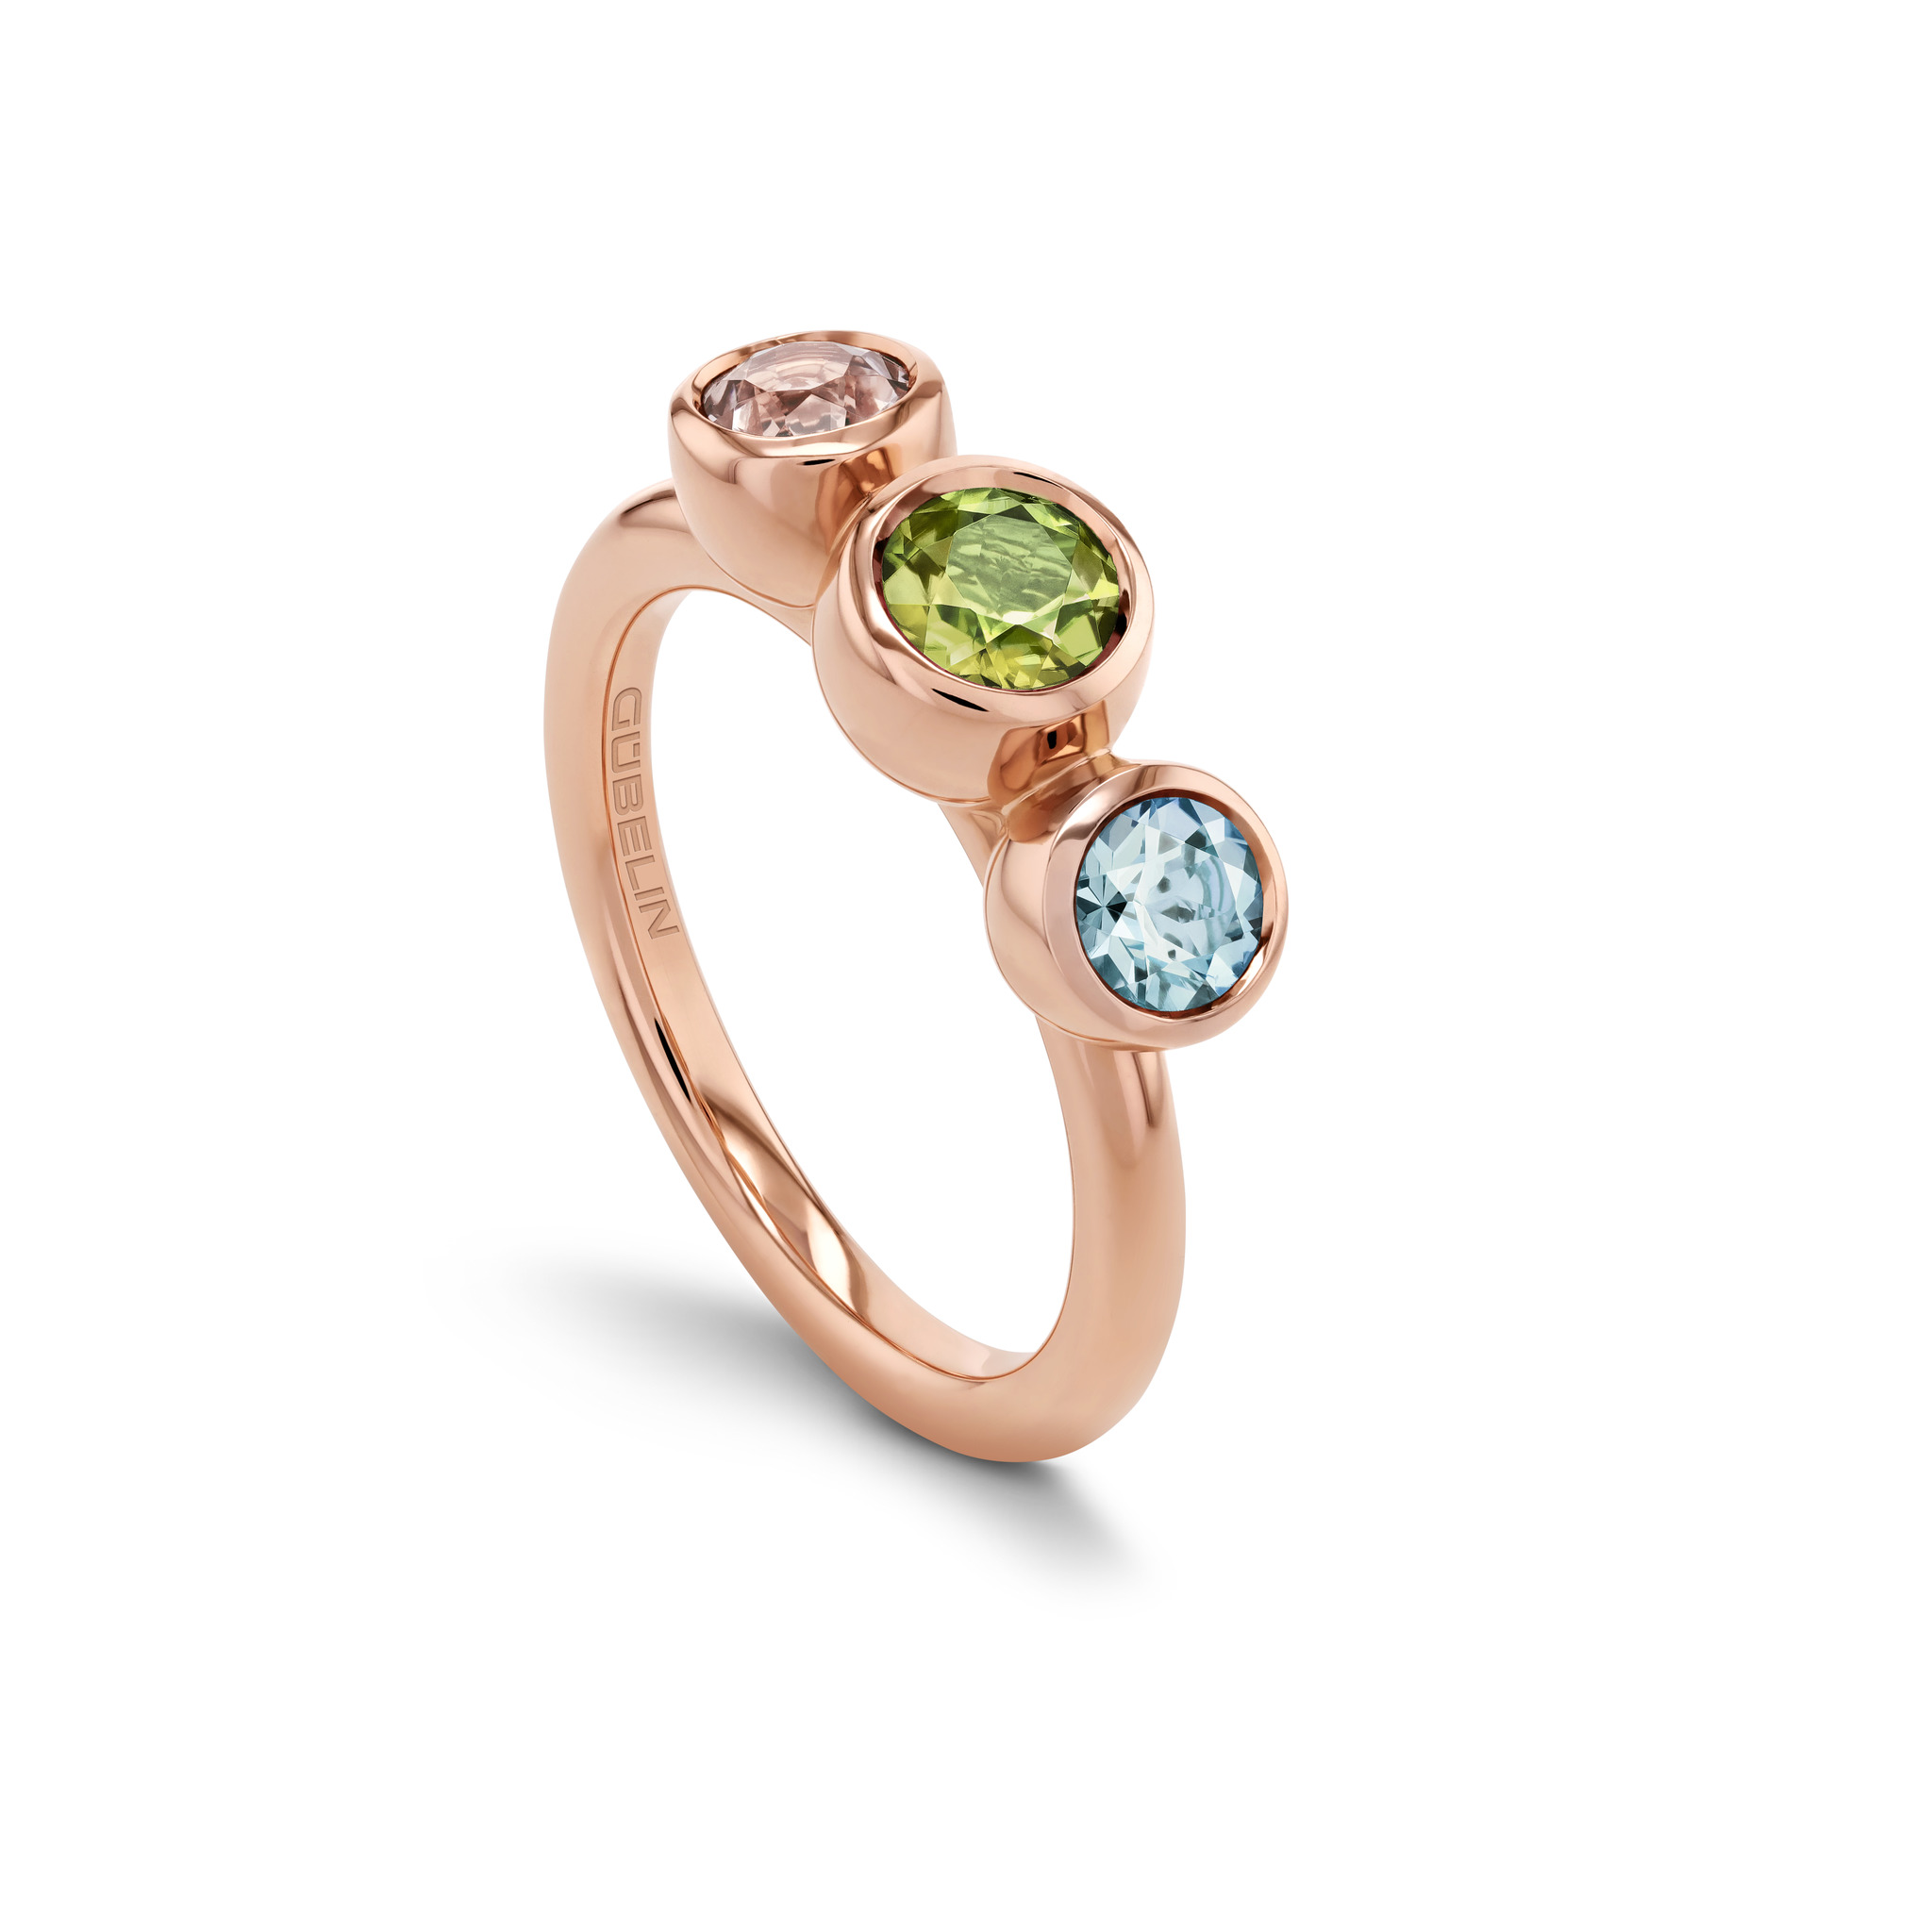 Ring with coloured gemstones